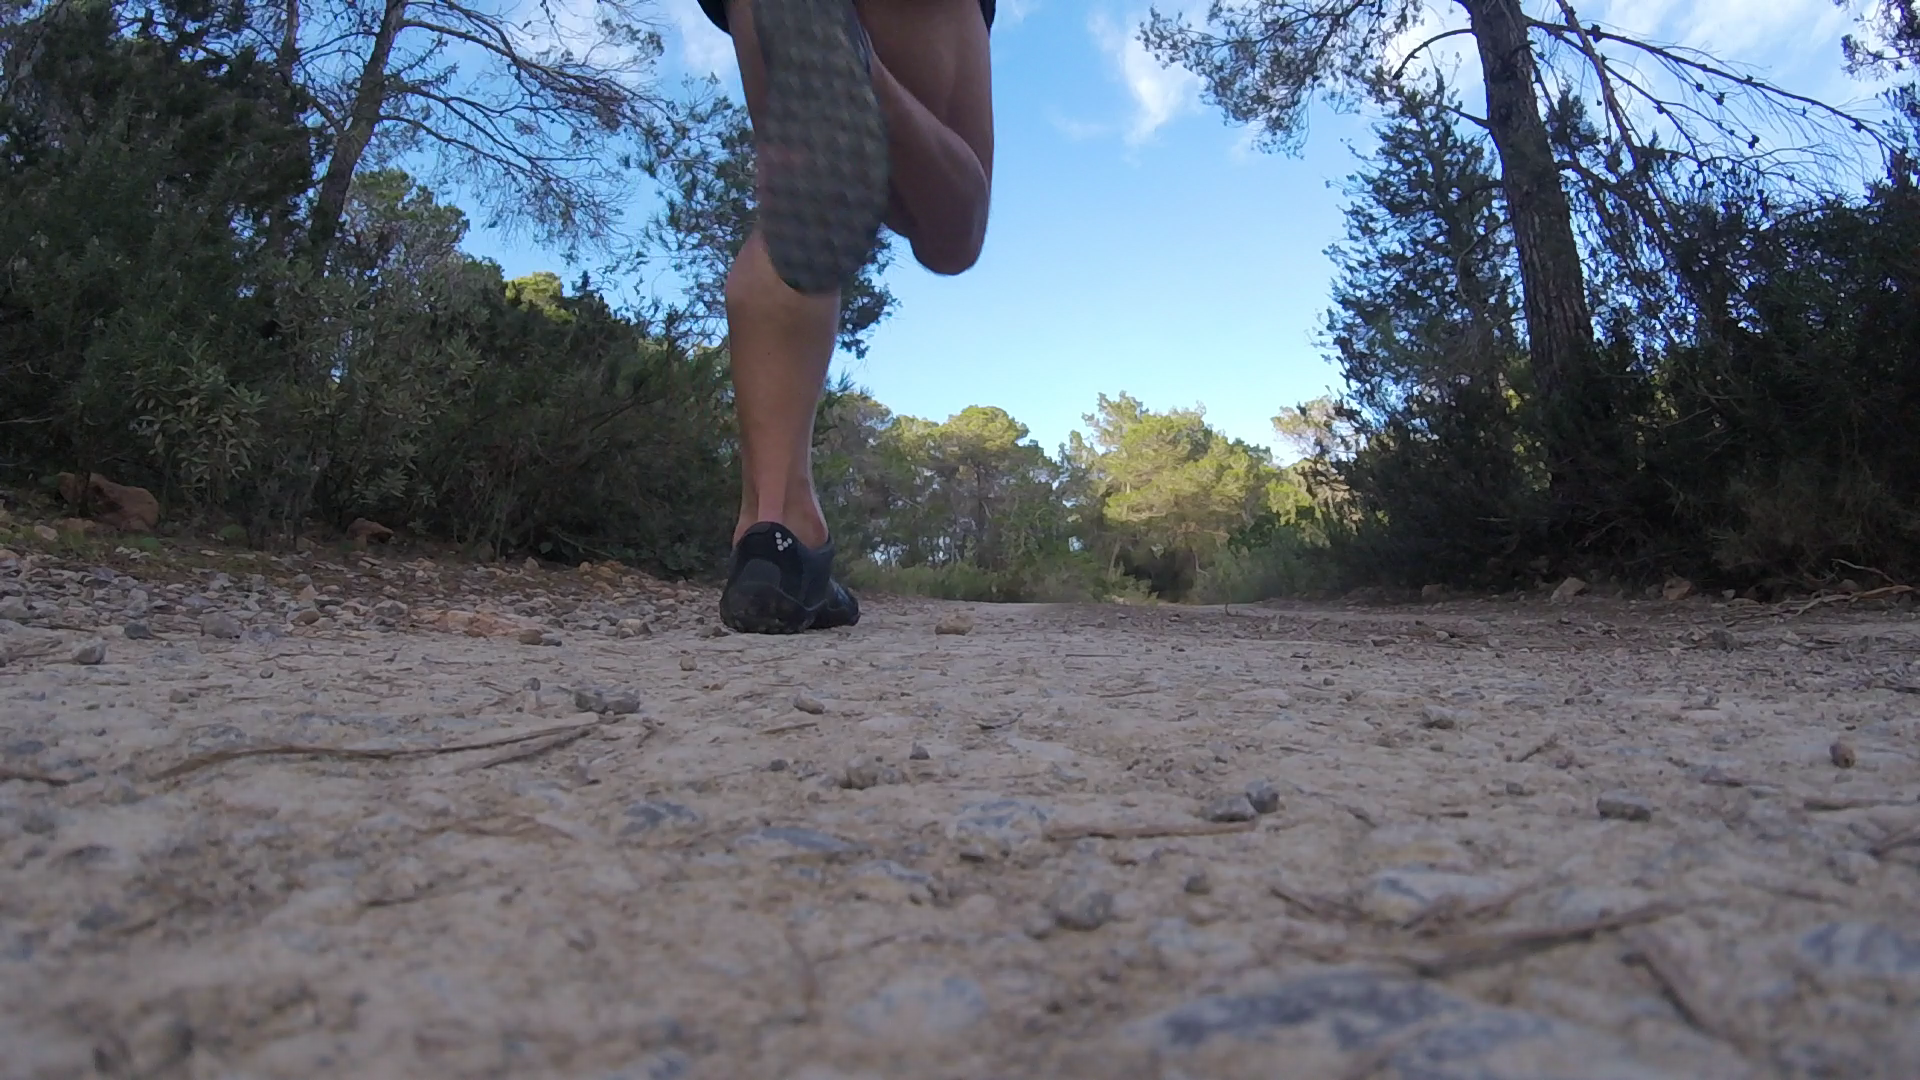 New to Trail Running? - If you're new to trail running, or perhaps curious why you might need a guide, then read on ...